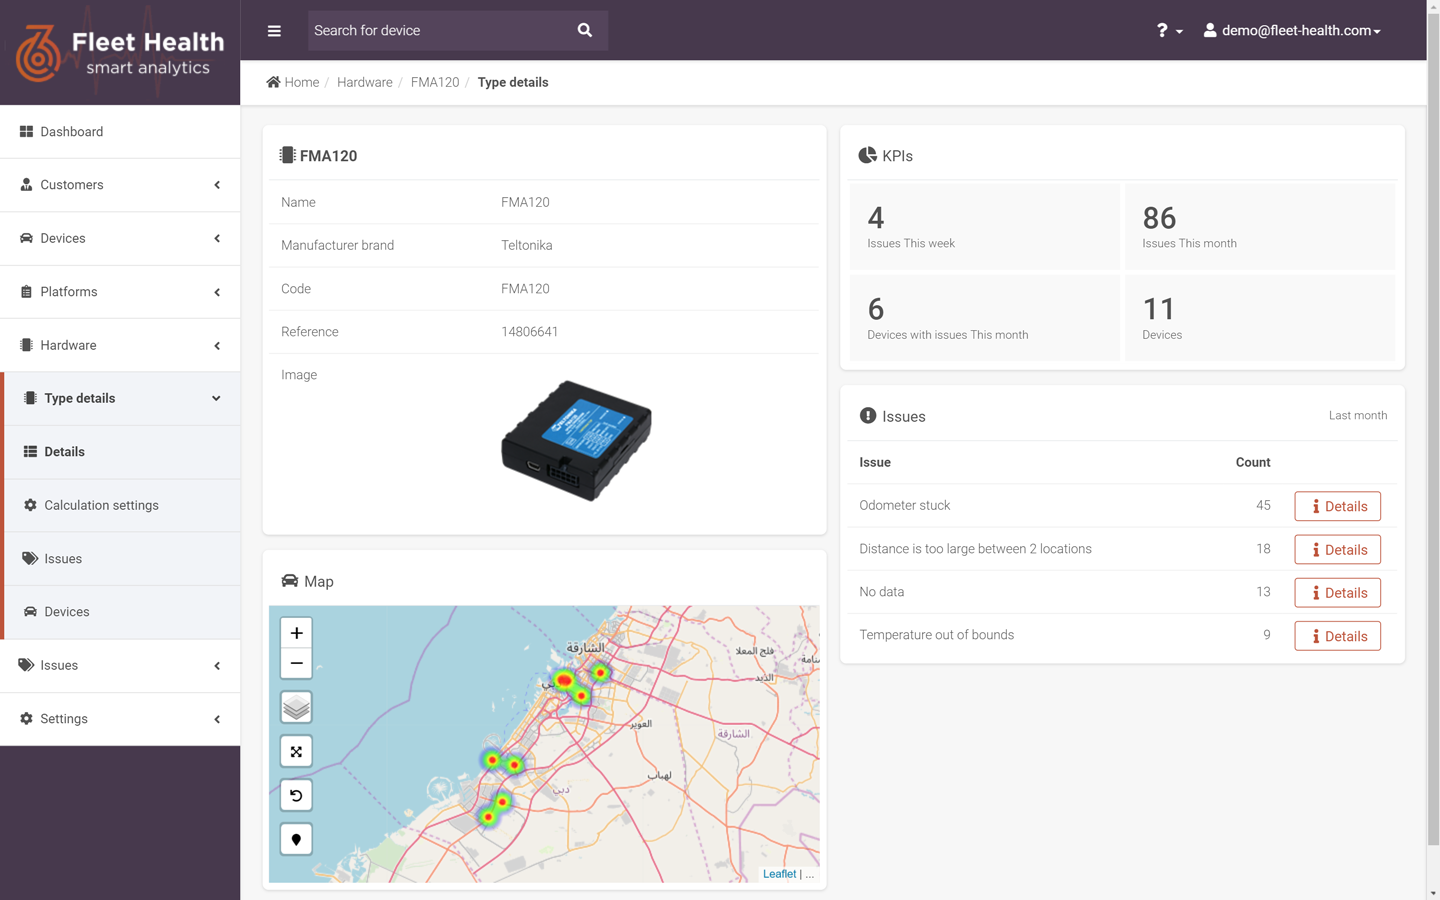 fleet health dashboard